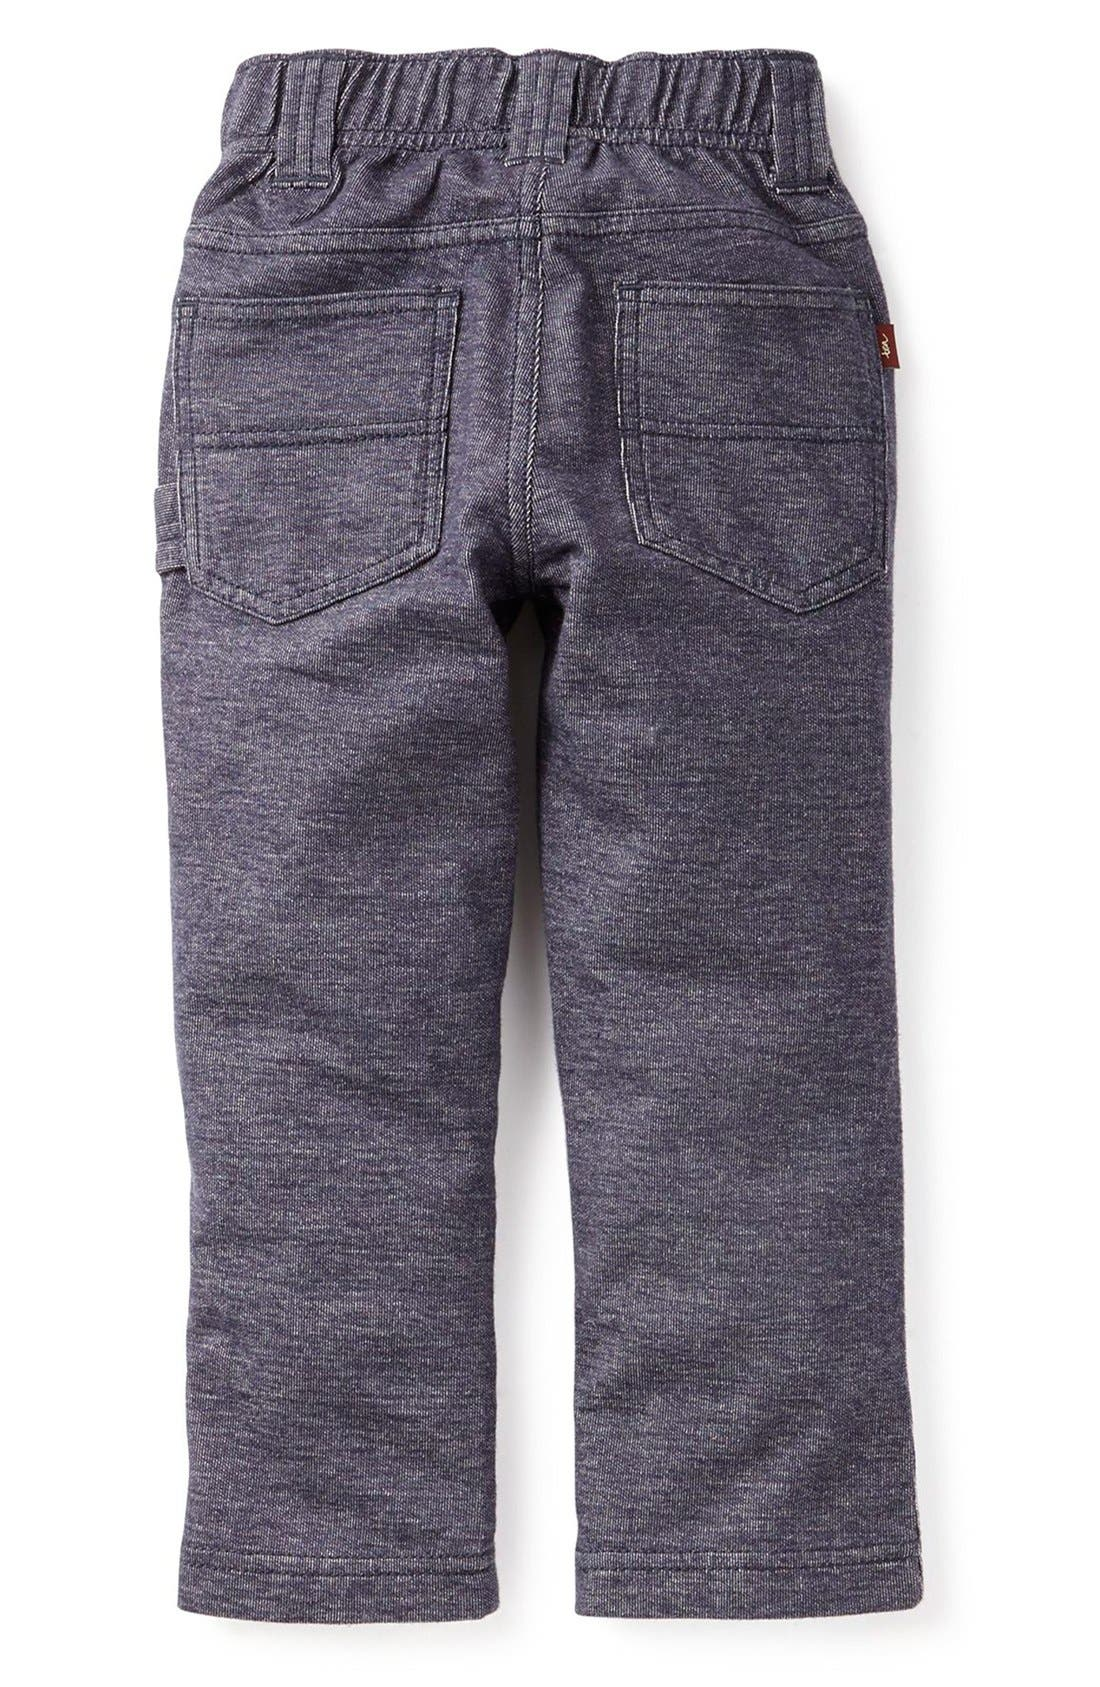 'Playwear' Pants,                             Alternate thumbnail 2, color,                             Indigo